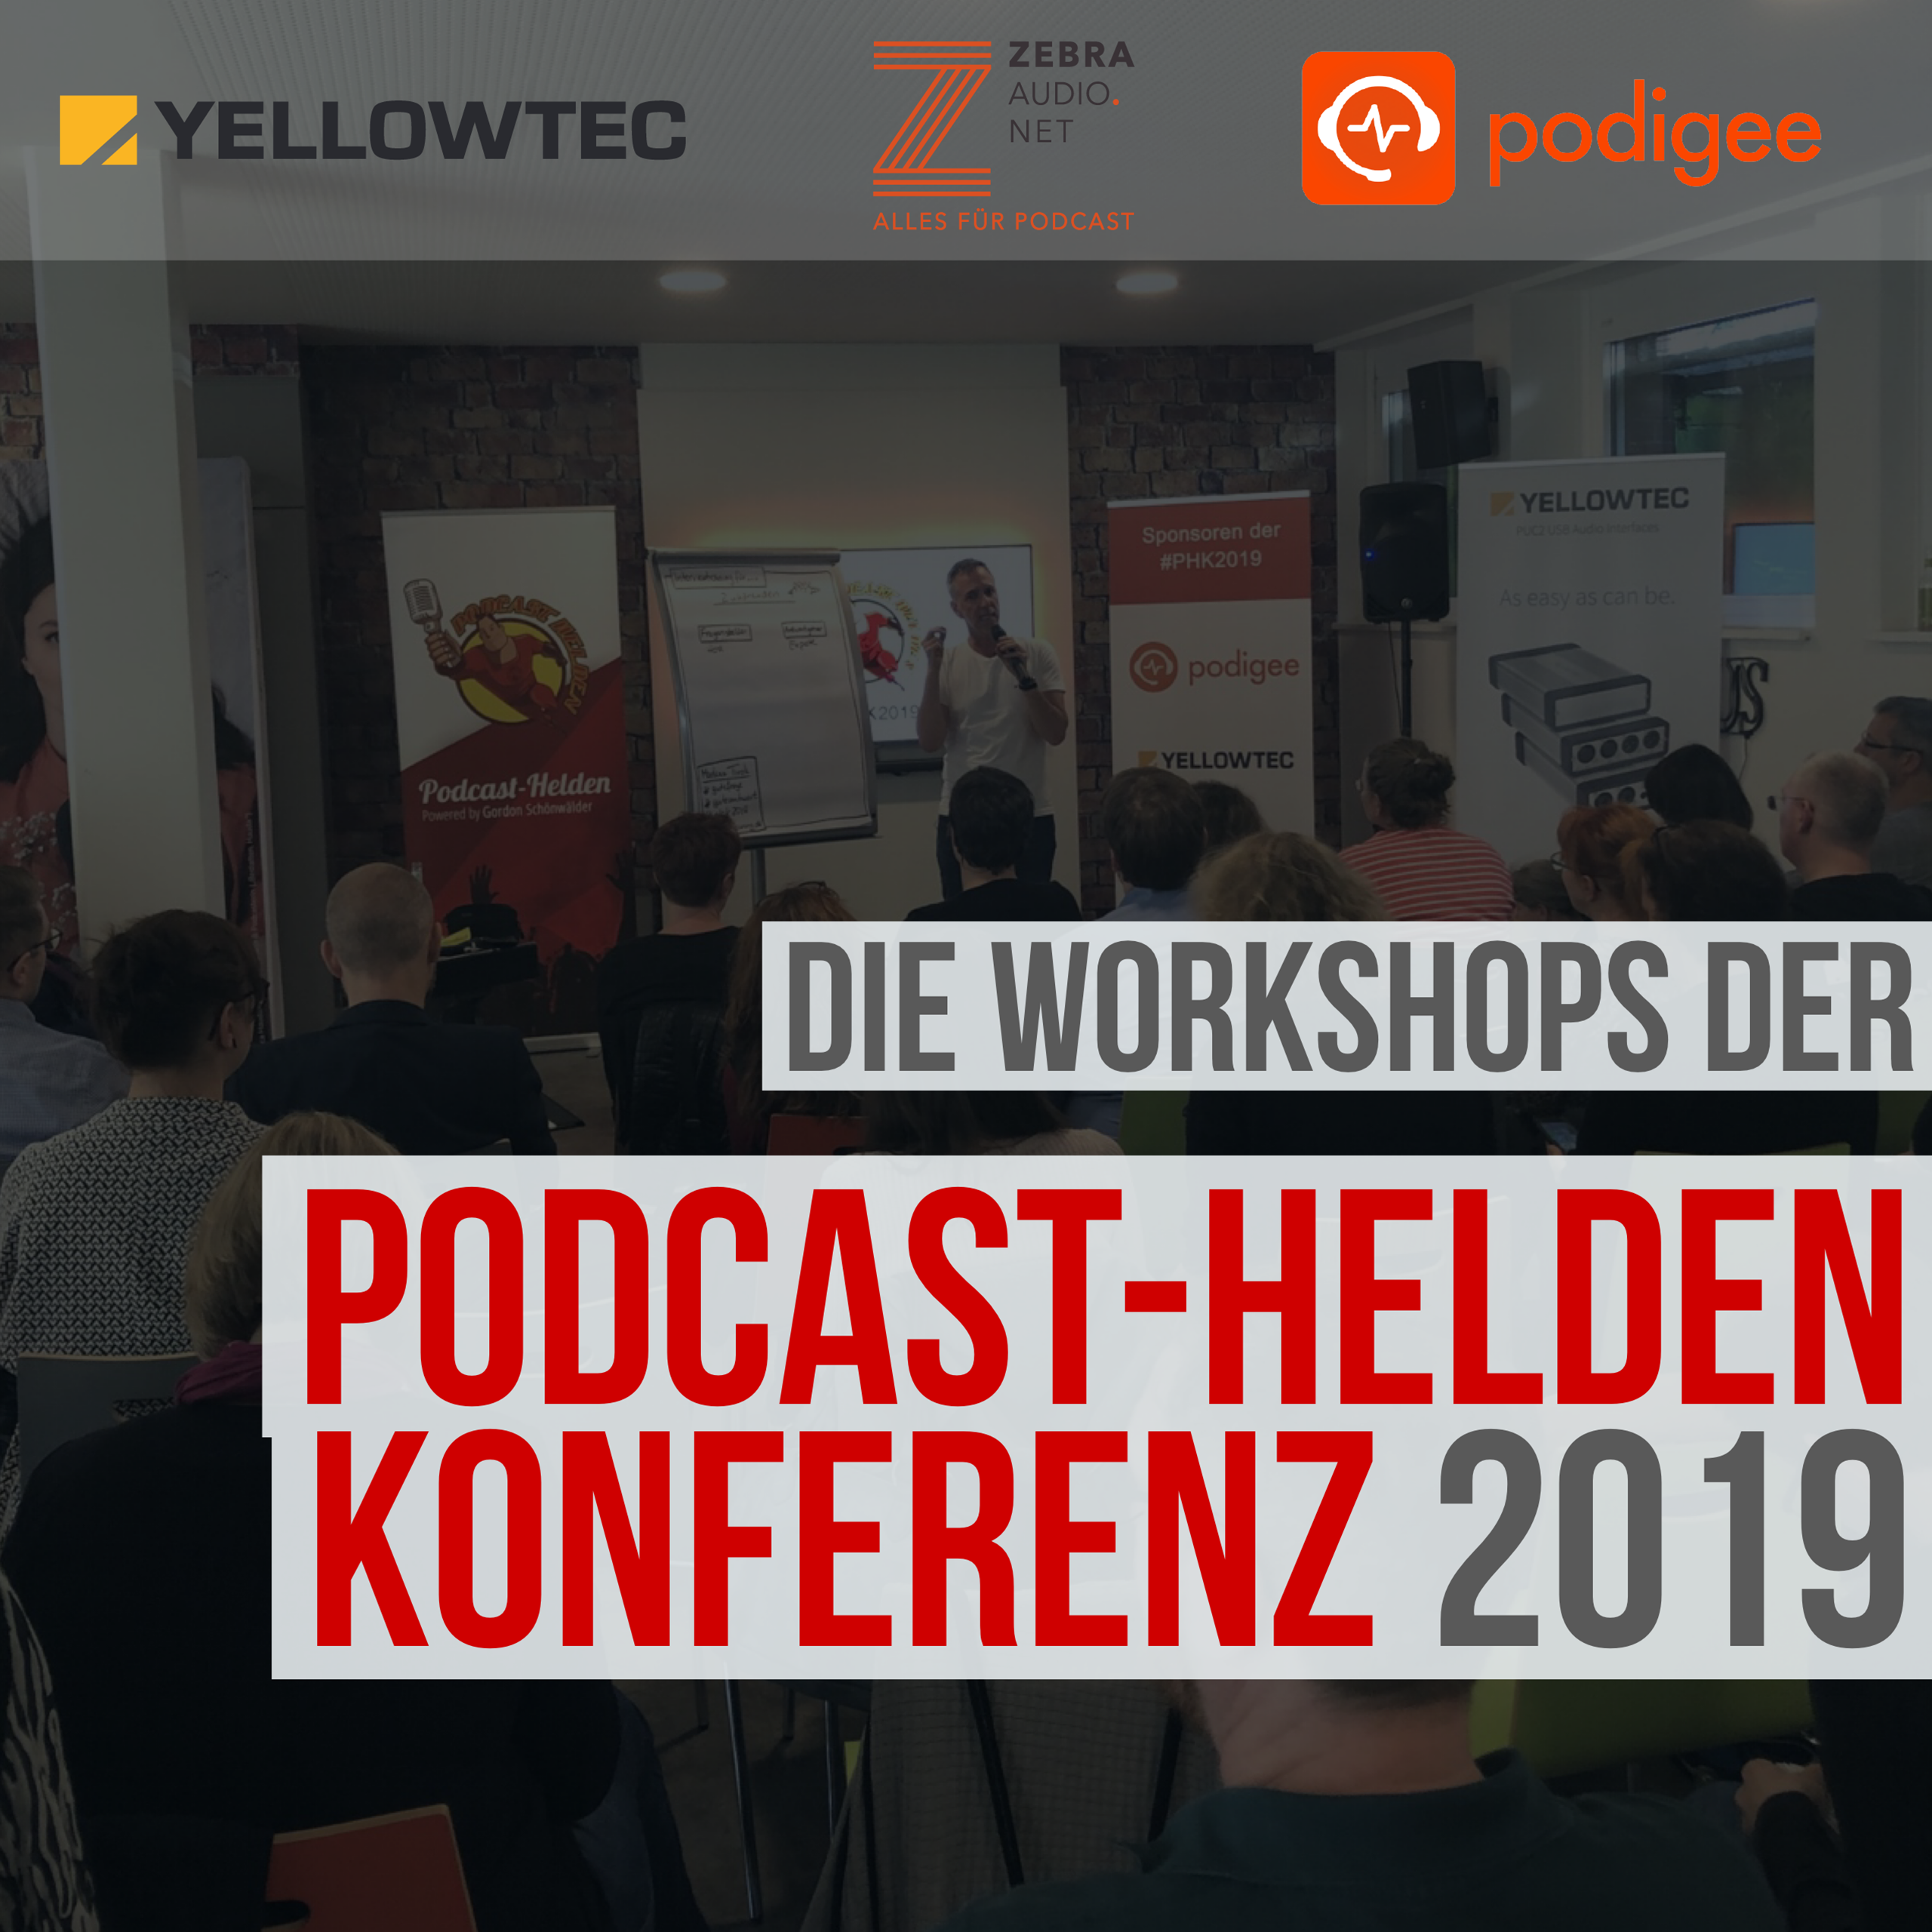 Die Workshops der Podcast-Helden-Konferenz 2019